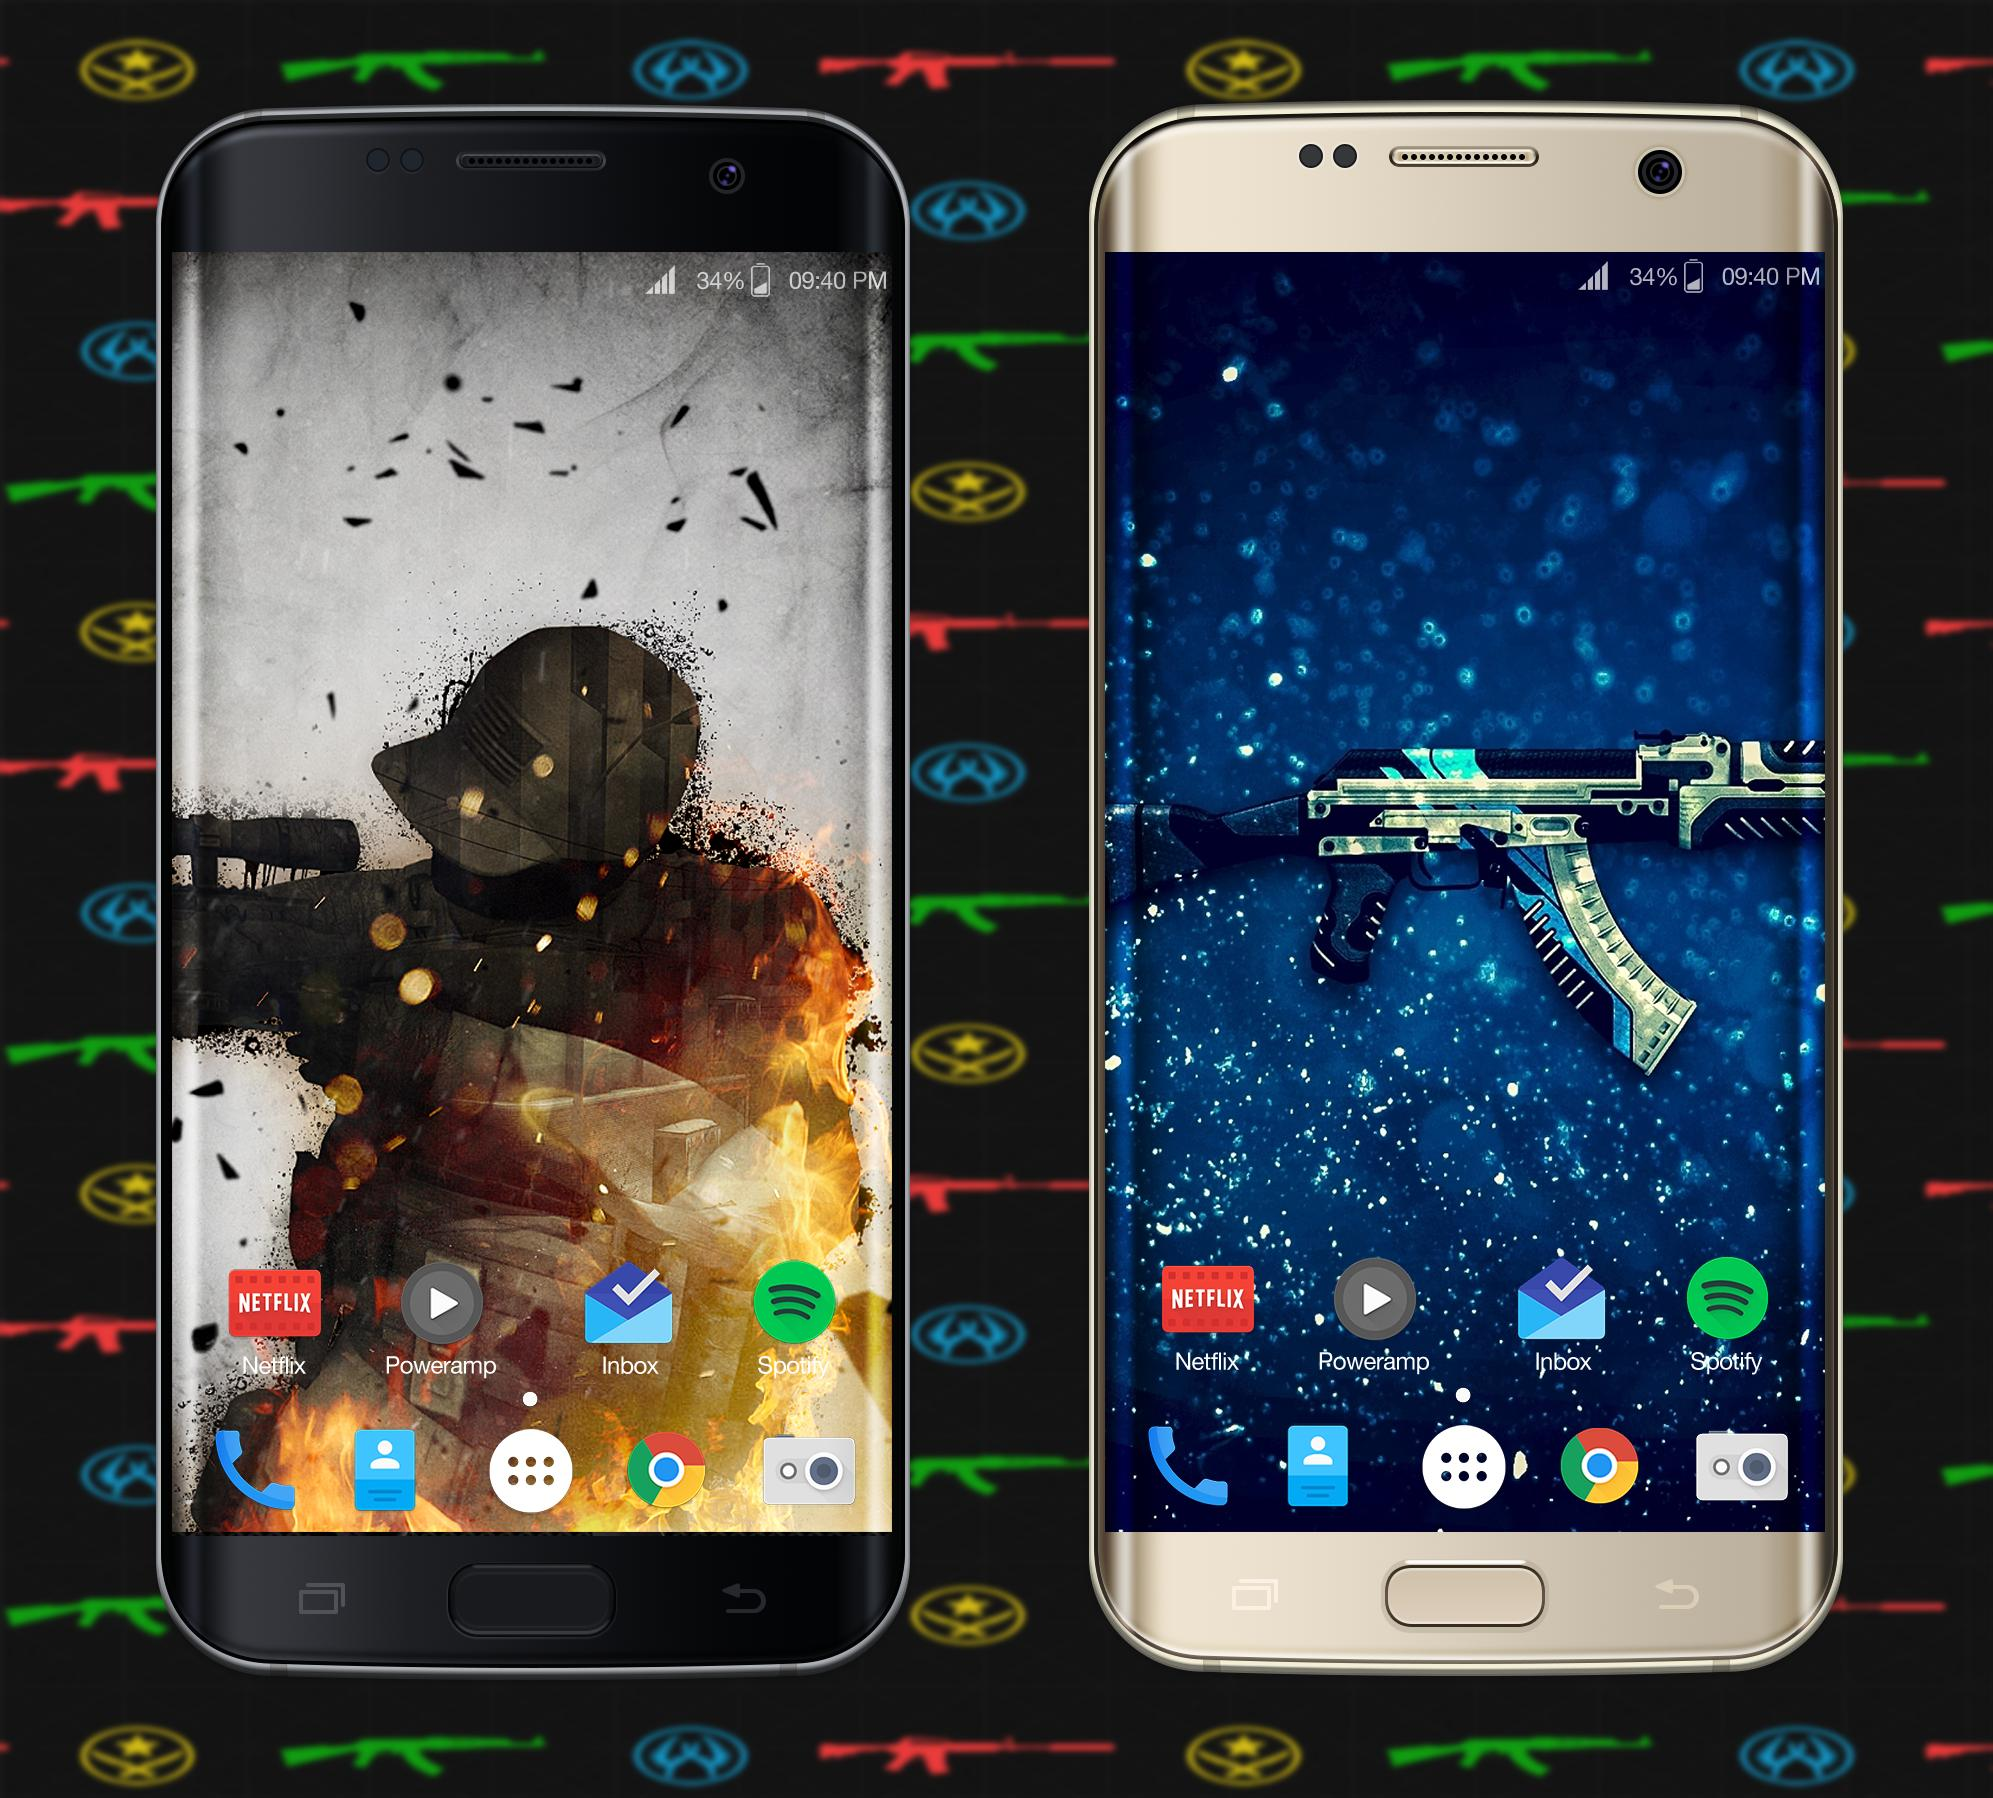 Csgo Wallpaper Hd For Android Apk Download